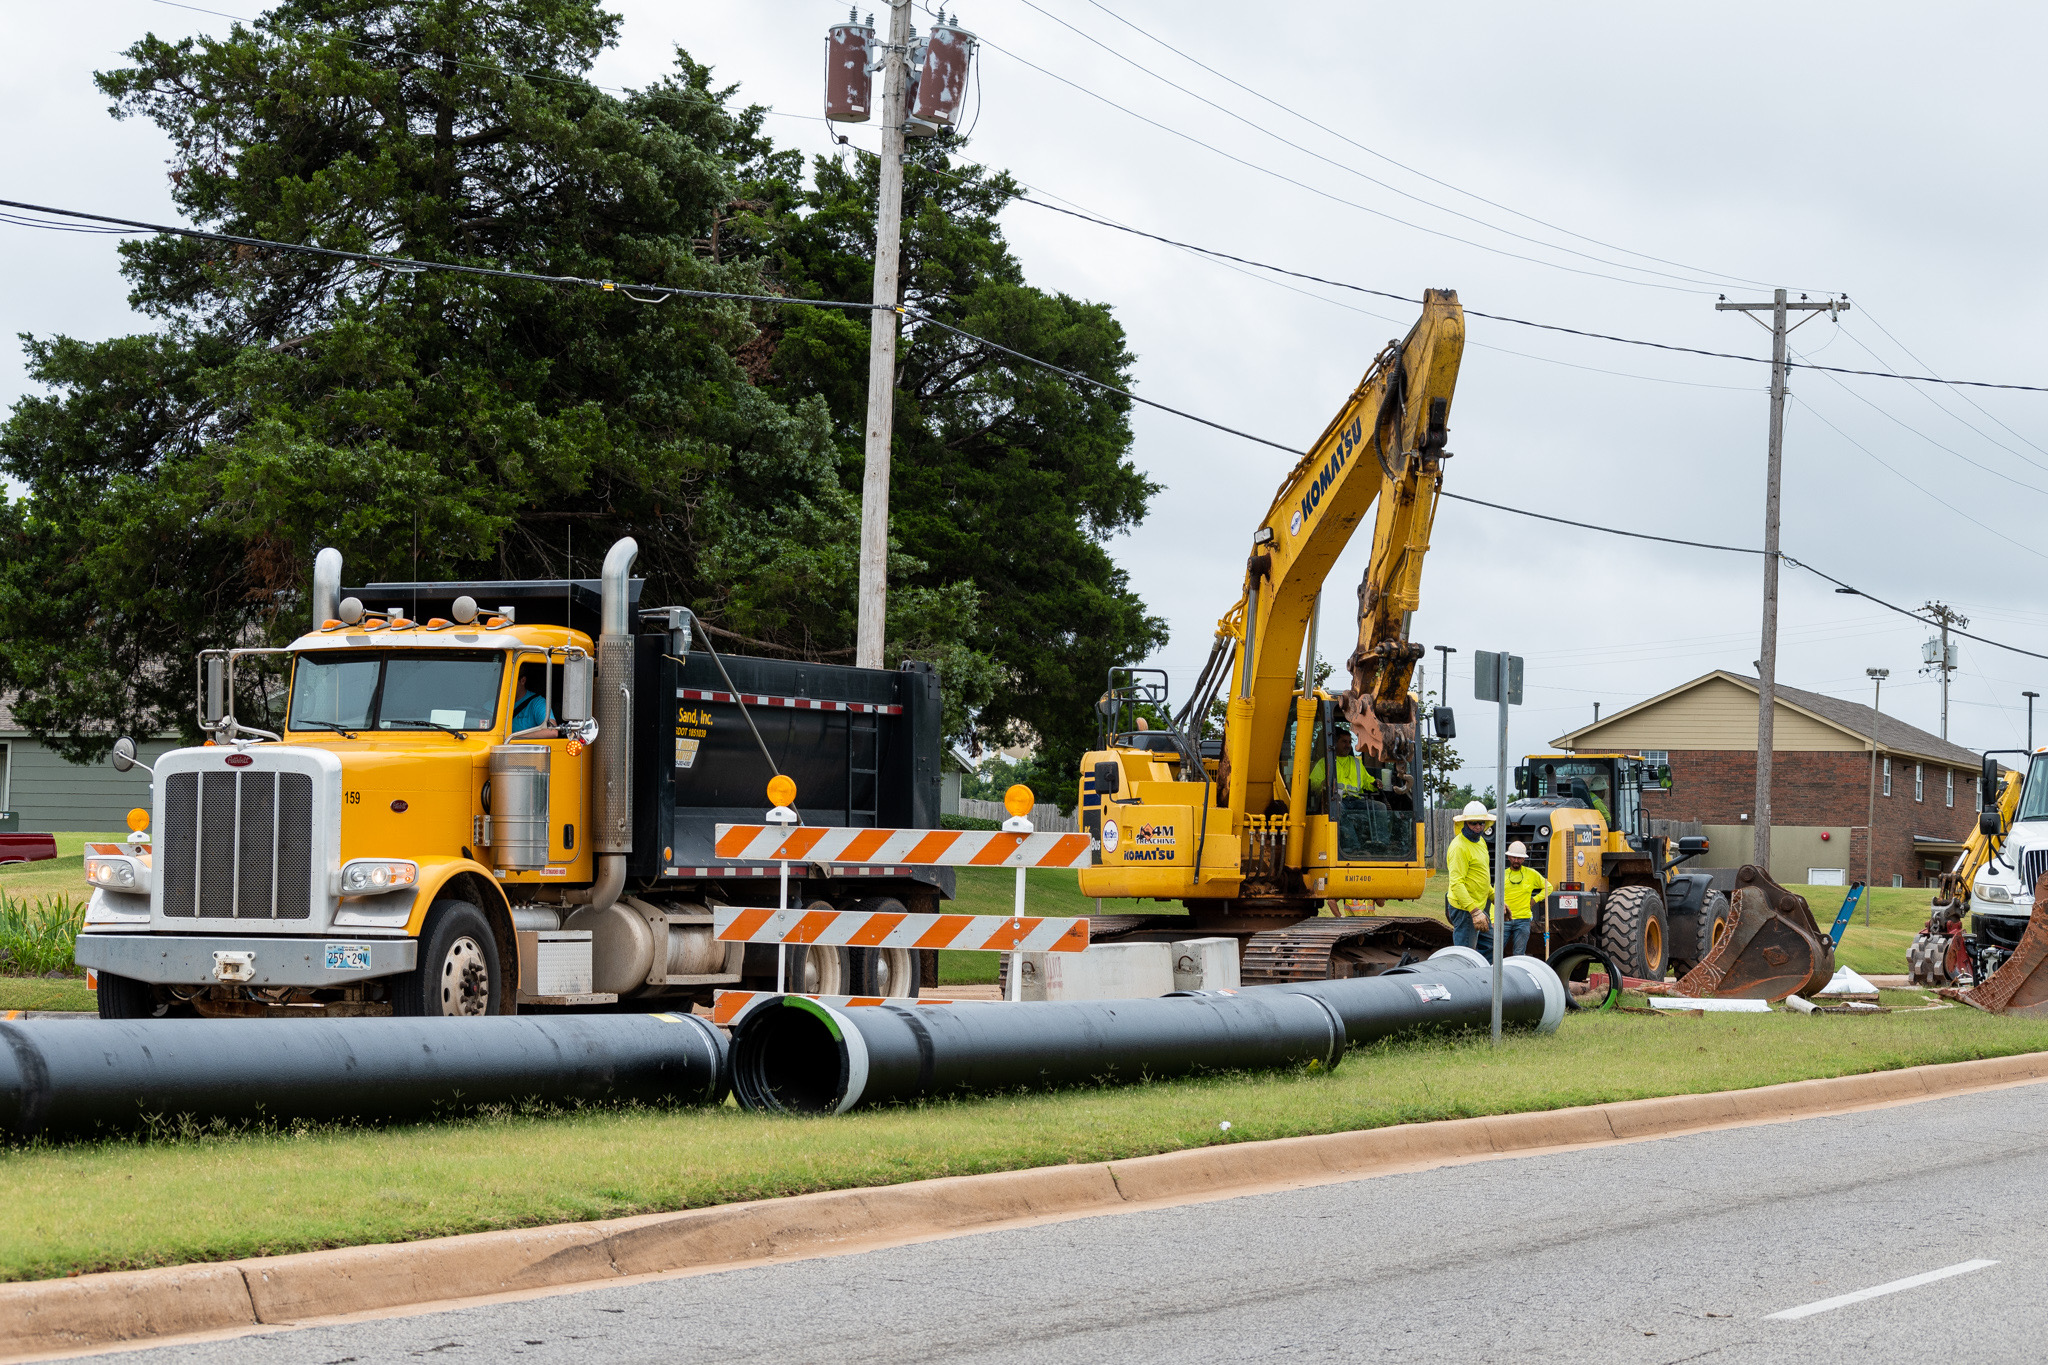 Construction project moves through campus